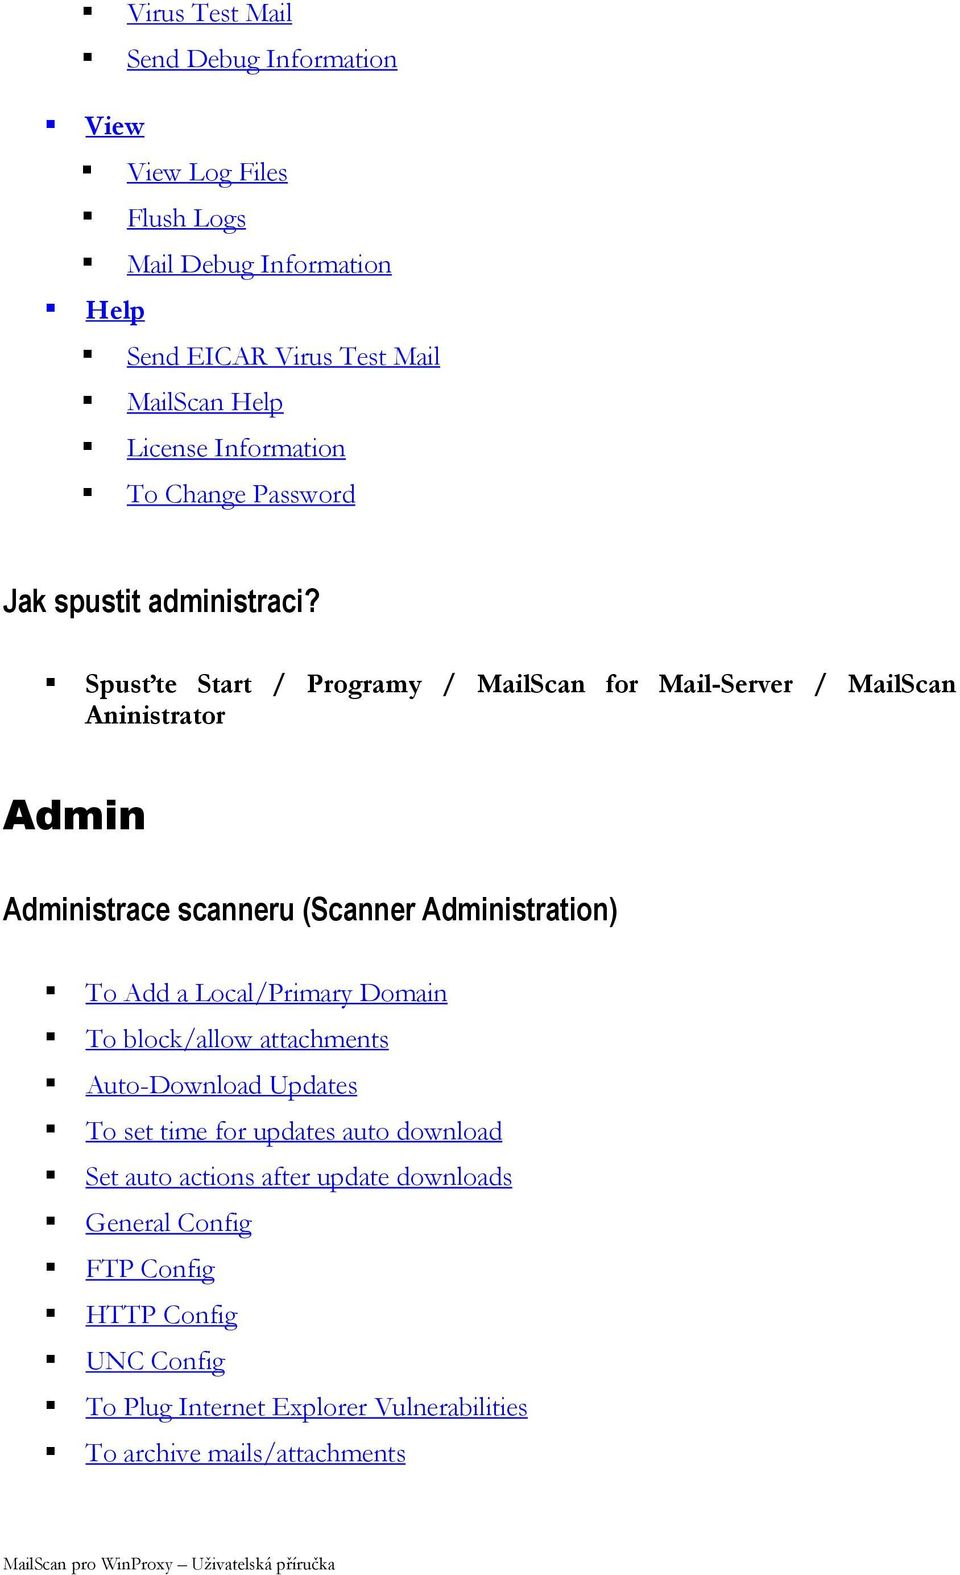 Spusťte Start / Programy / MailScan for Mail-Server / MailScan Aninistrator Admin Administrace scanneru (Scanner Administration) To Add a Local/Primary